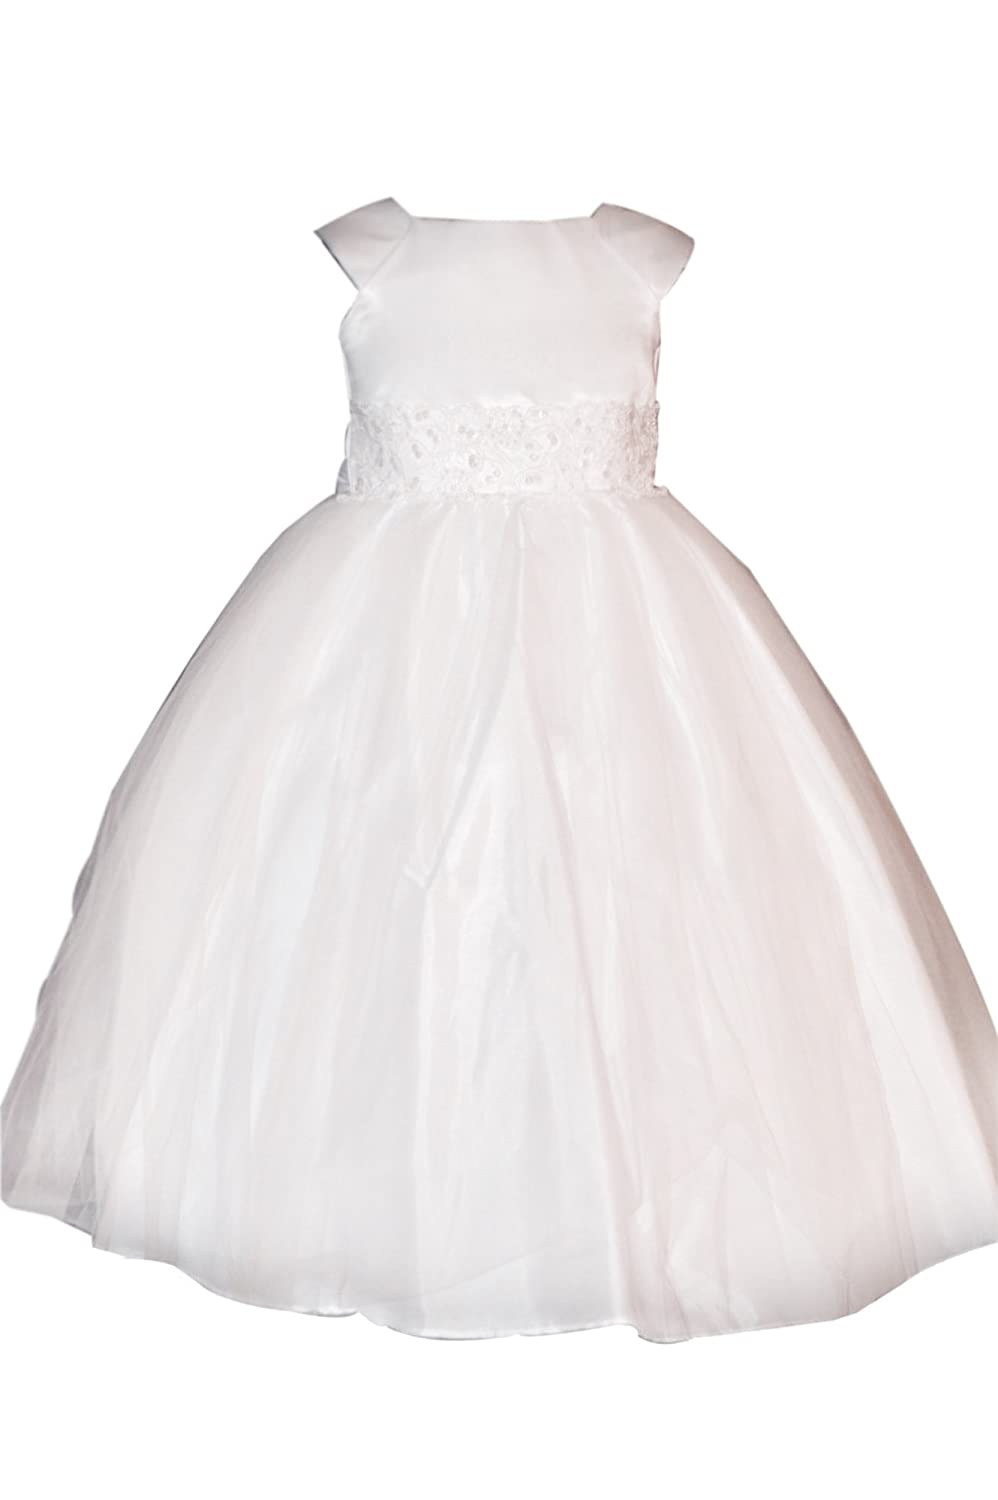 32d6d6b6f6fa7 Amazon.com  Ceci Kid White First Communion or Baptism Dress for Girls with  Cap Sleeves  Clothing